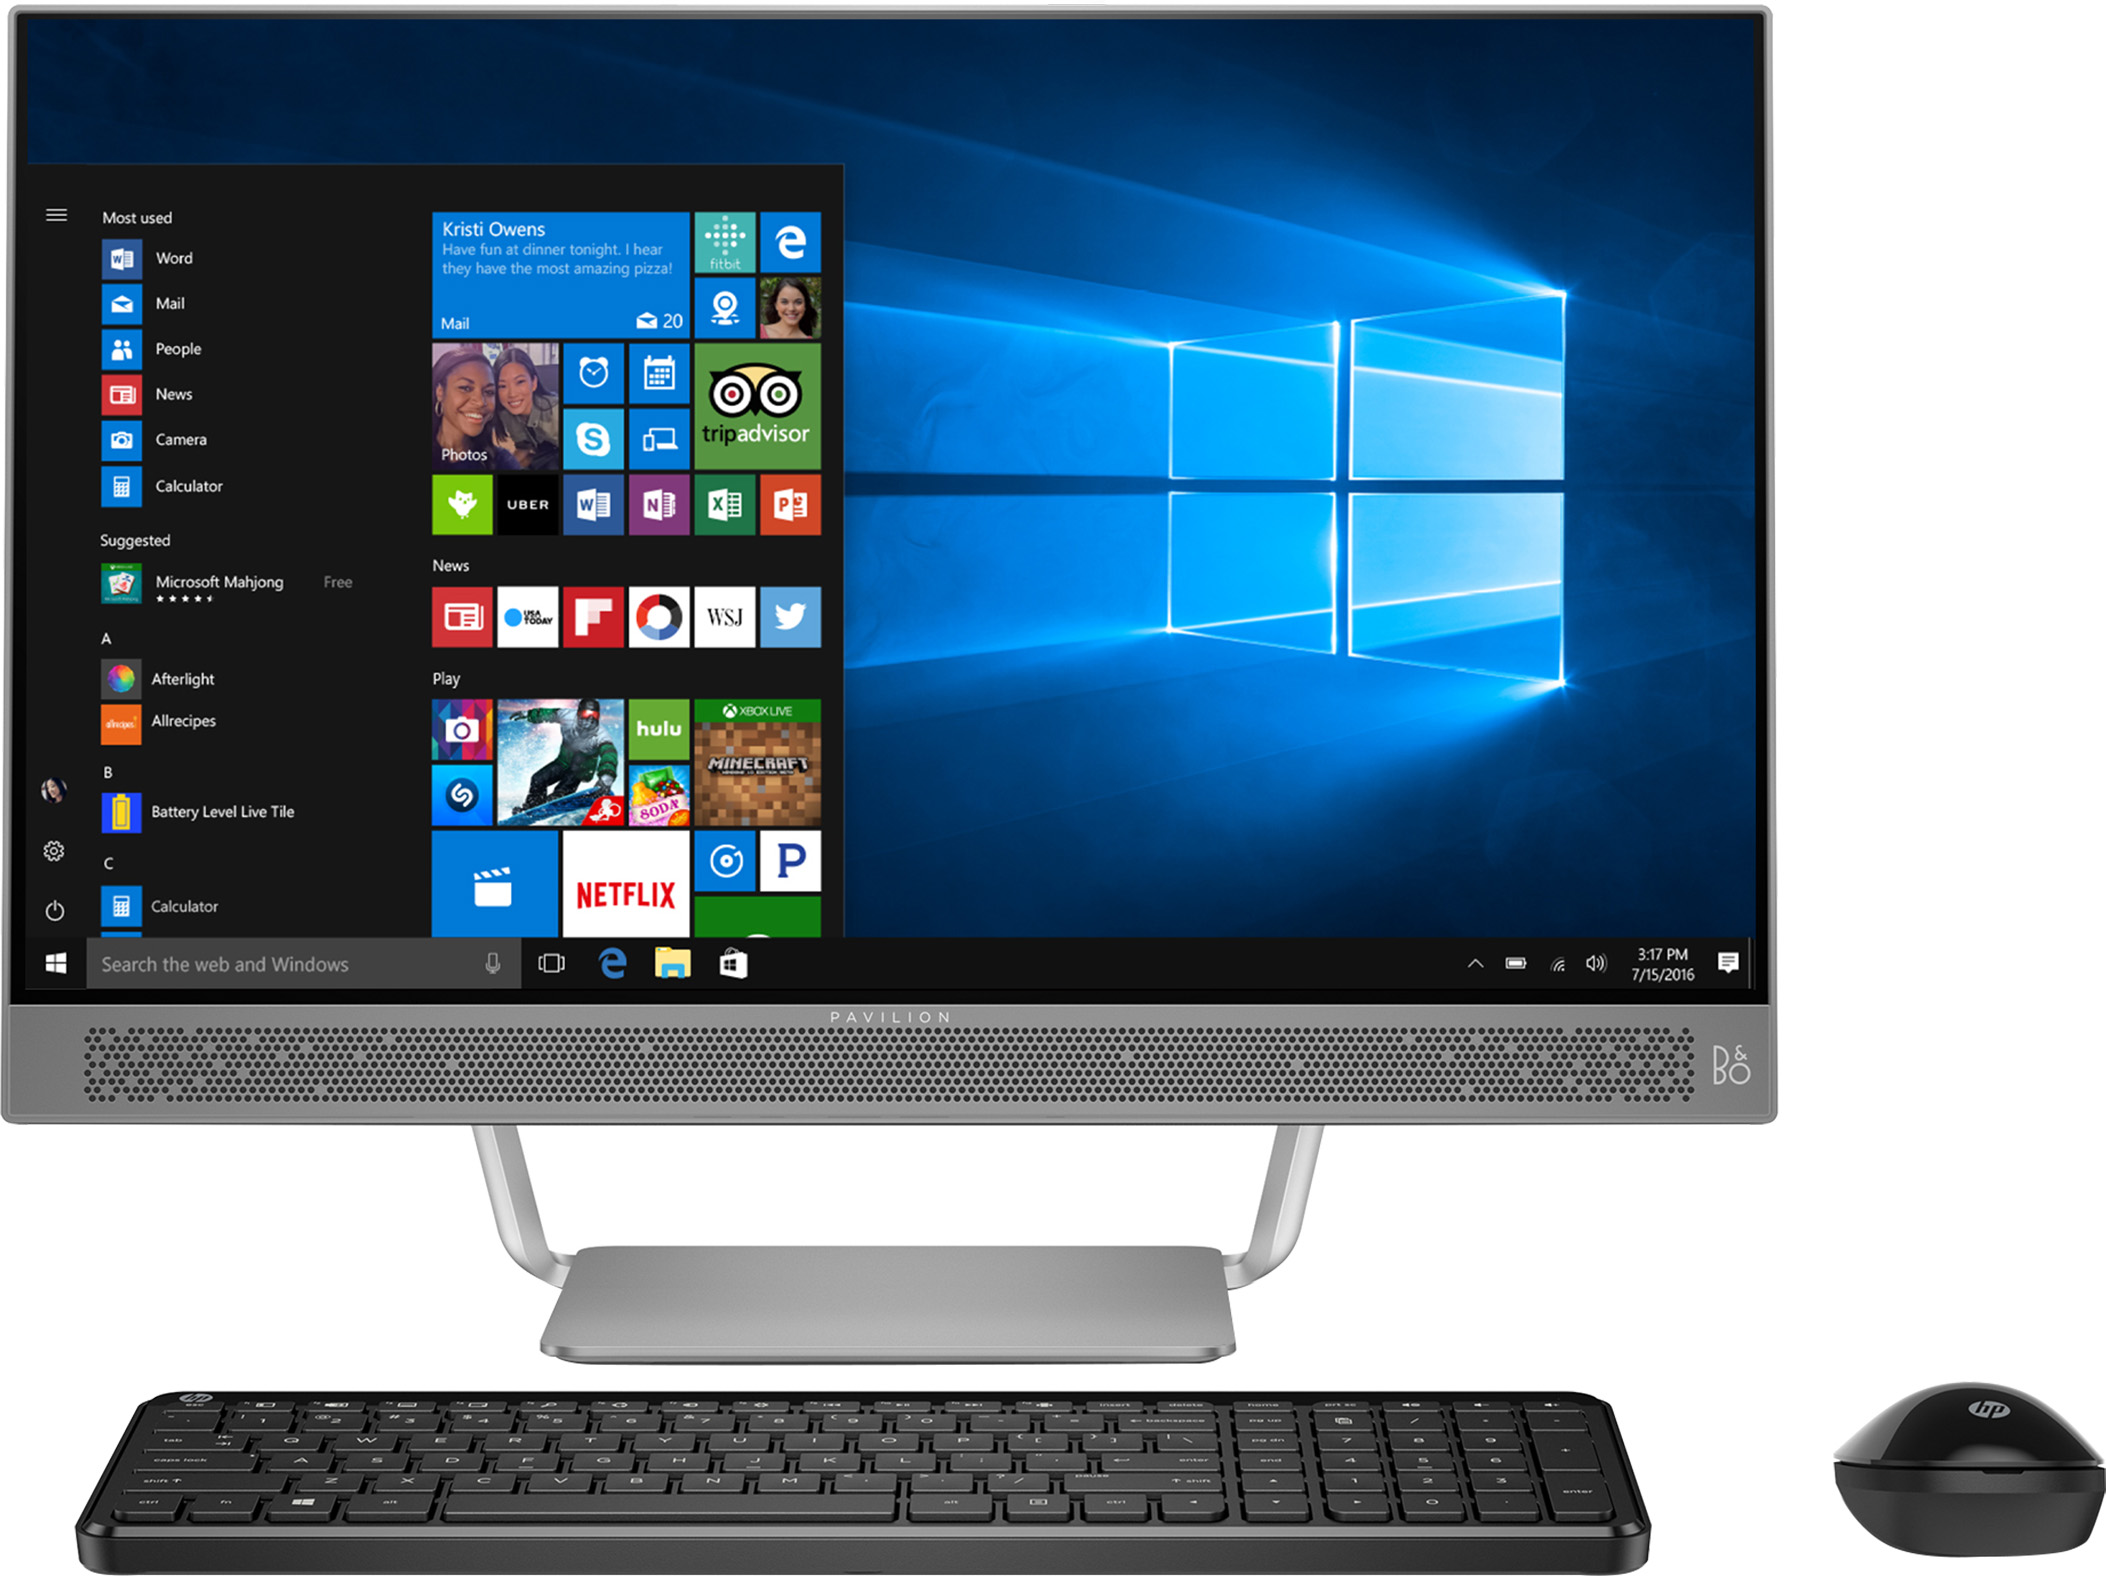 HP Pavilion 24-b011 Signature Edition All-in-One